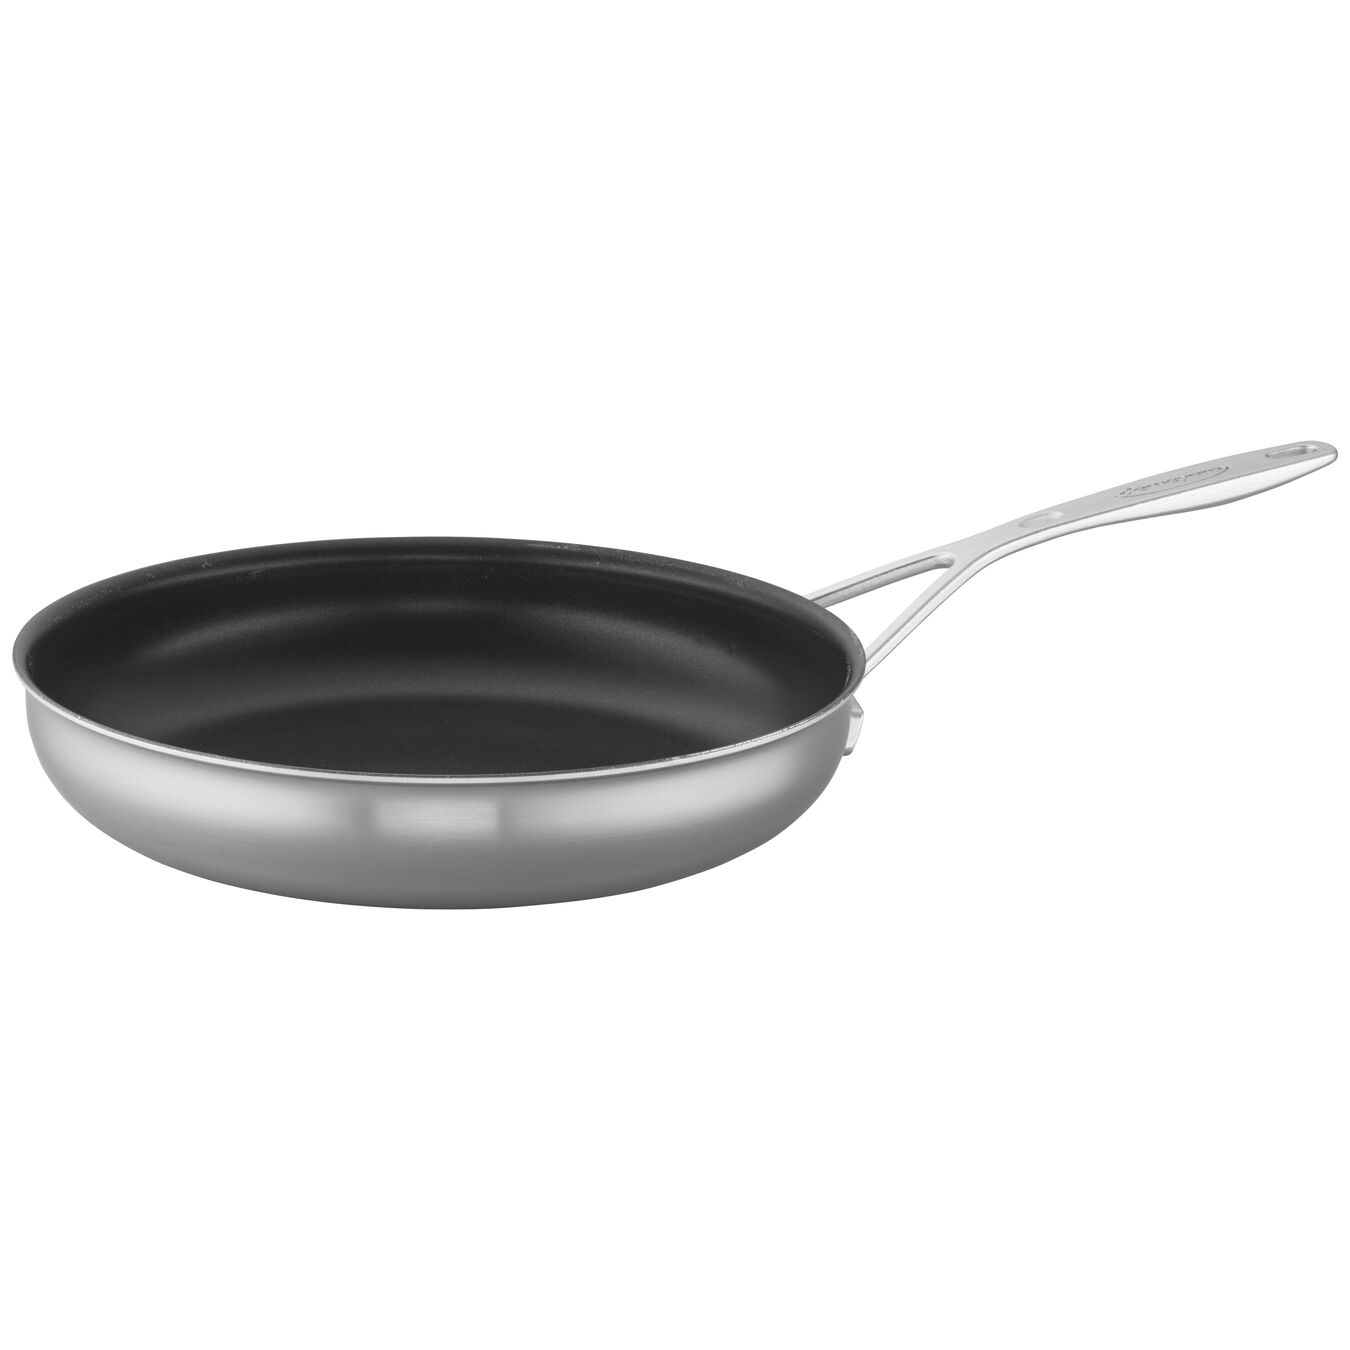 11-inch, 18/10 Stainless Steel, Non-stick, PTFE, Frying pan,,large 3